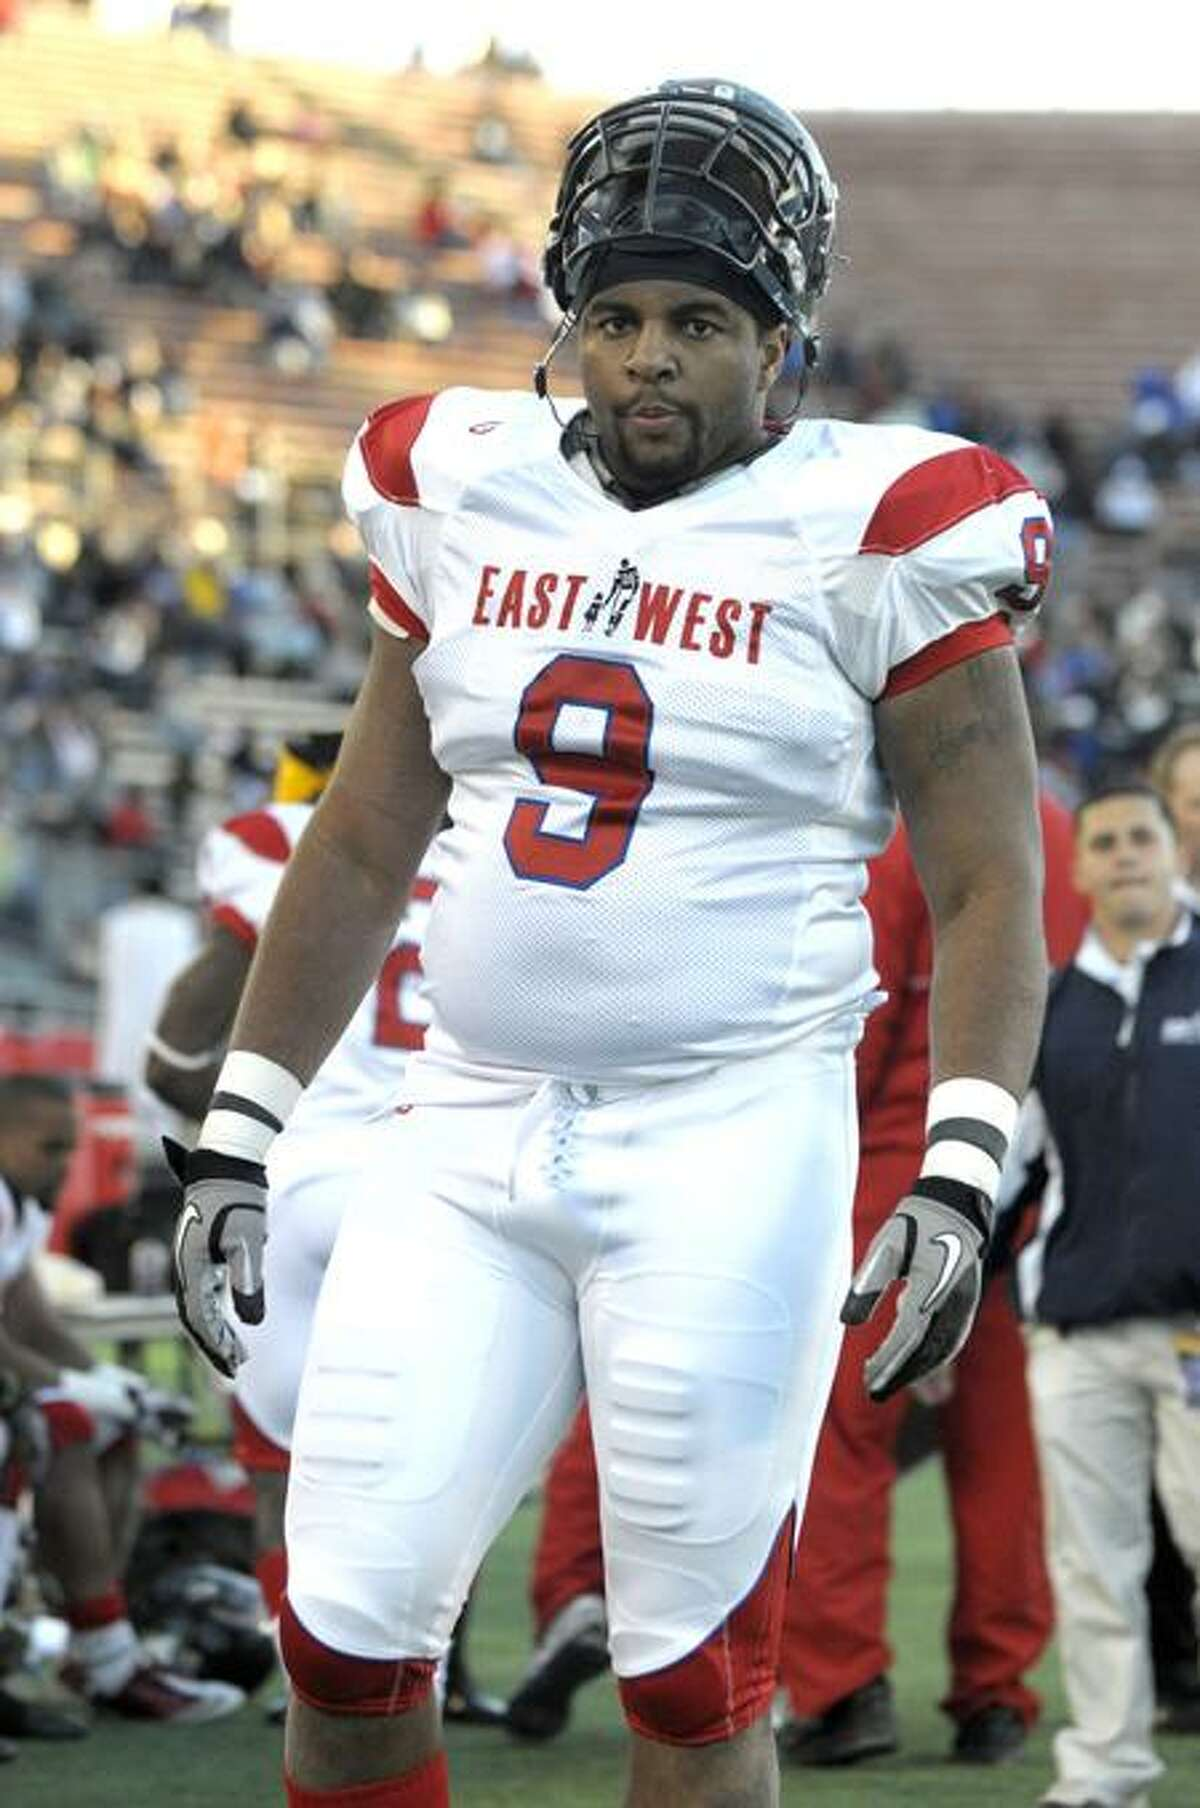 Richmond defensive tackle Martin Parker, who hails from New Haven, made NFL teams take notice with his performance at the East-West Shrine Game in January. (AP Photo/Phelan M. Ebenhack)